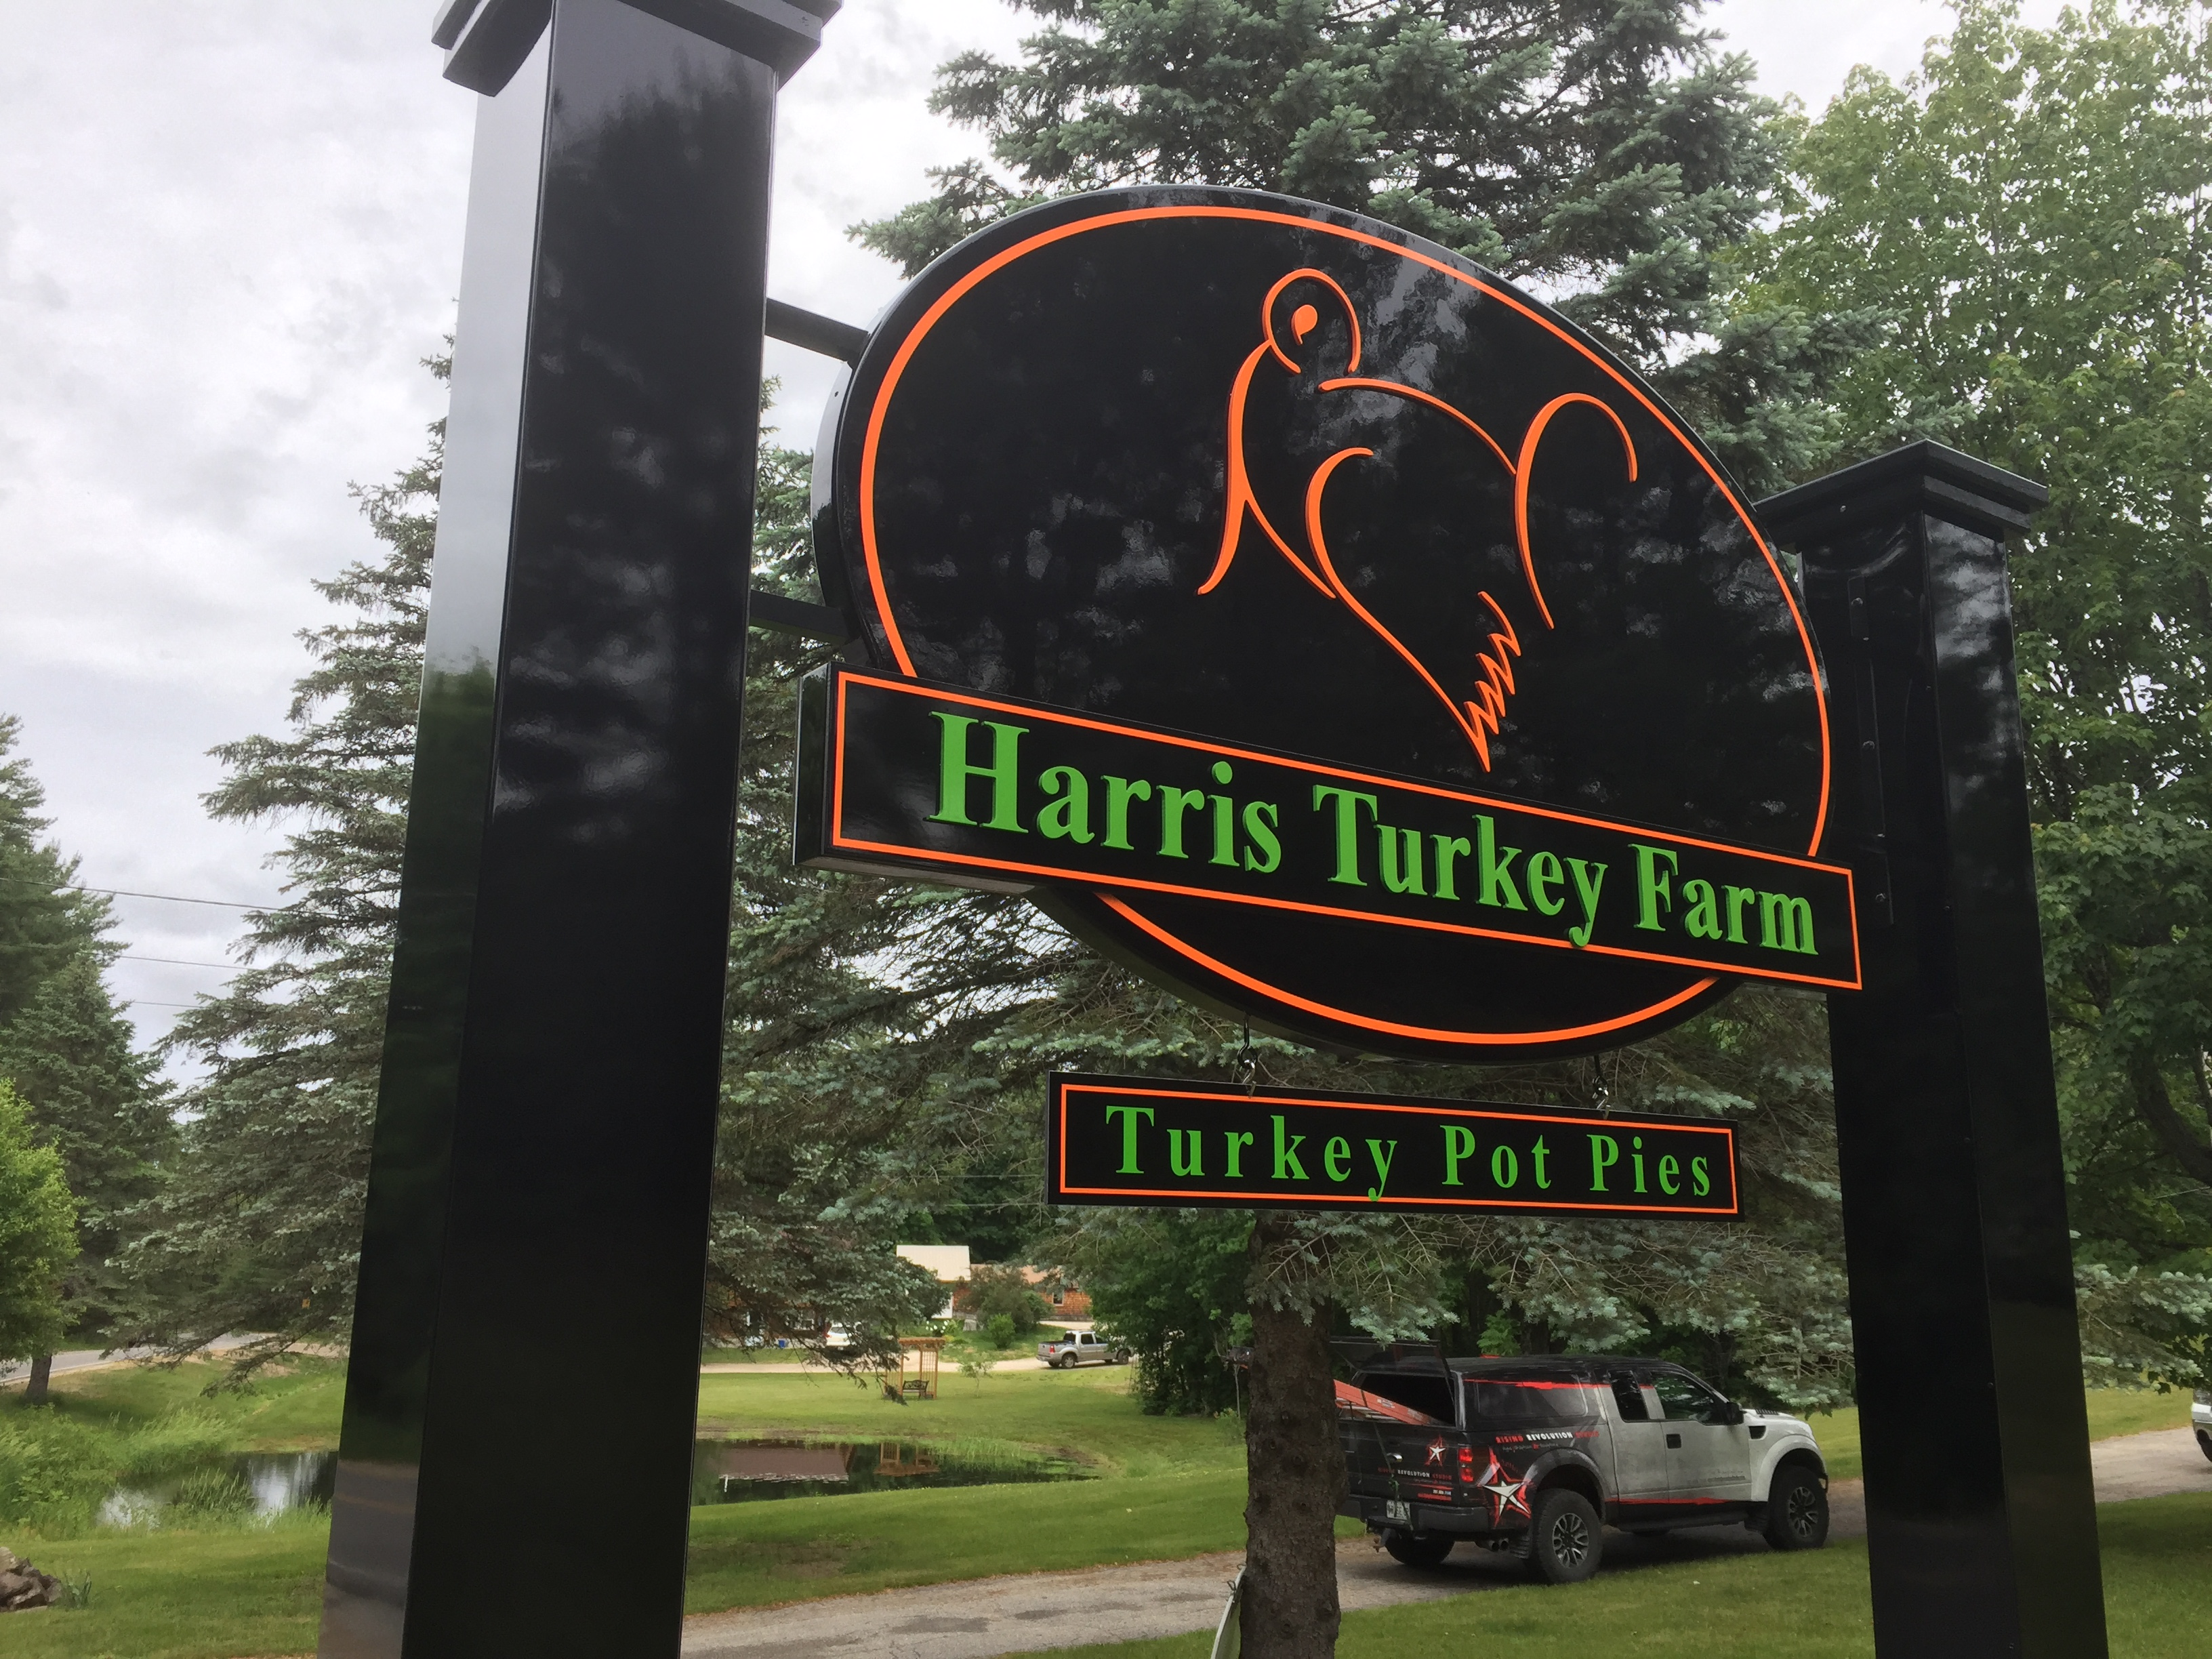 Harris Turkey Farm